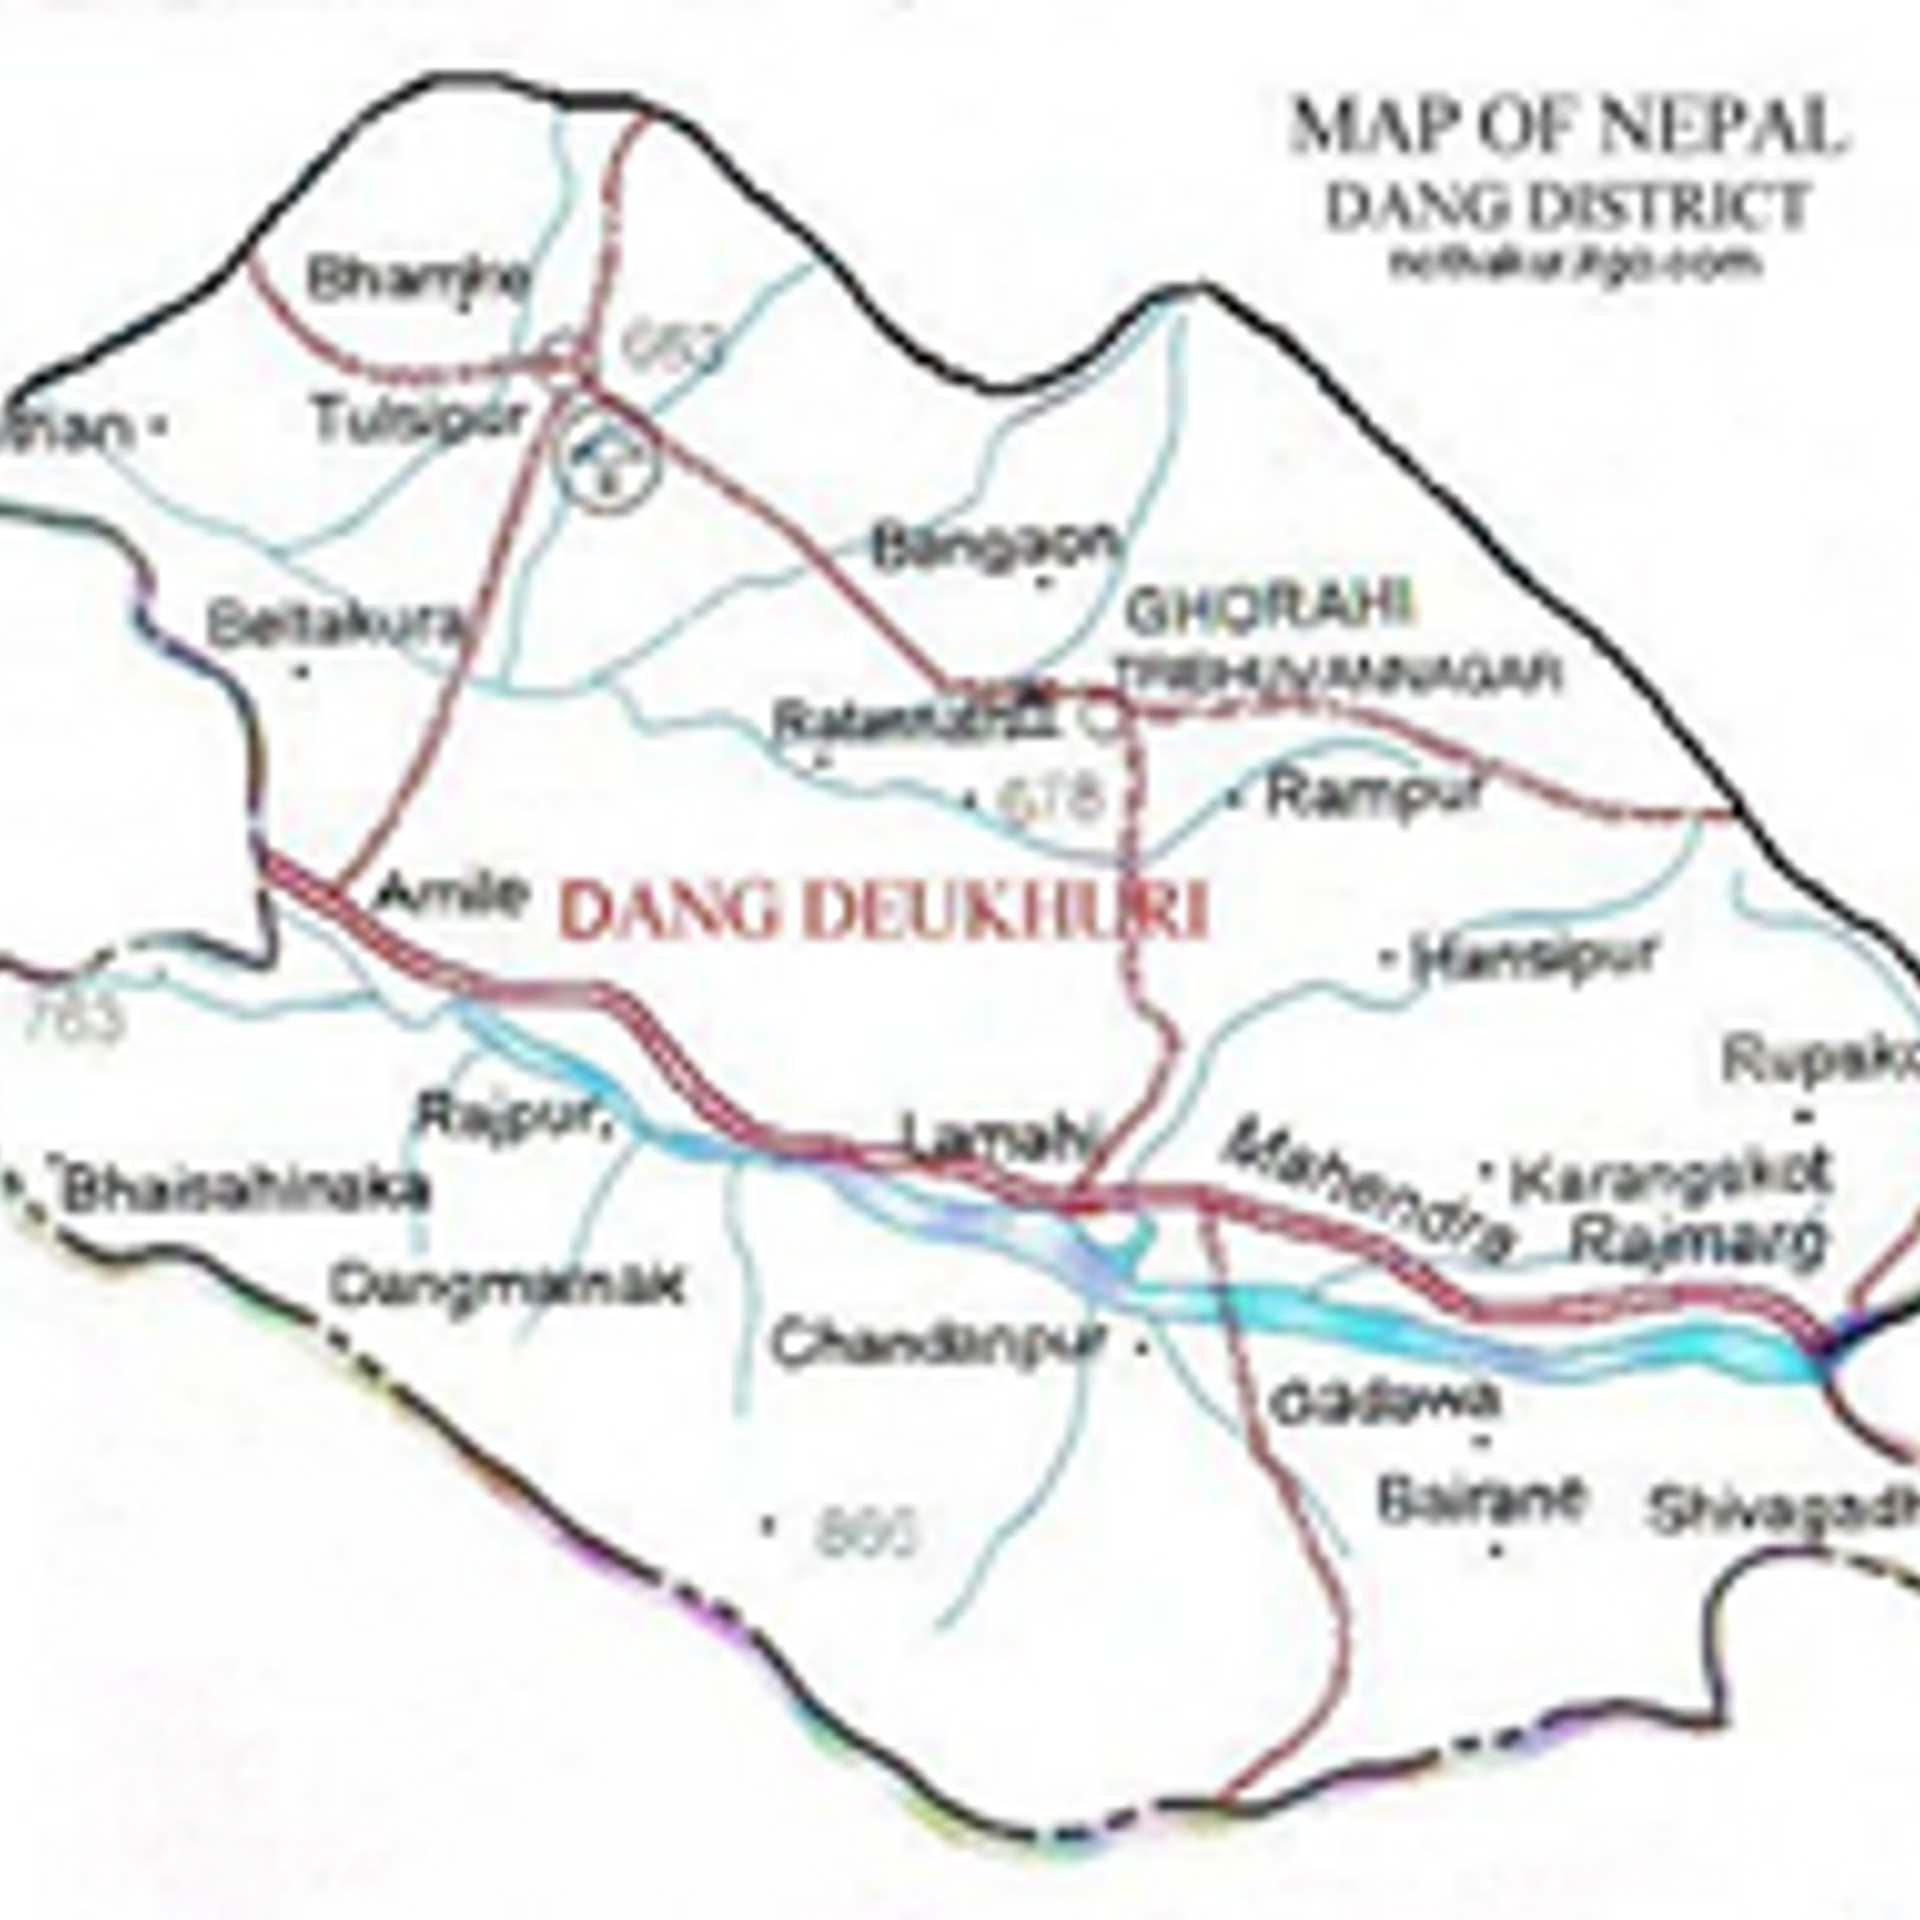 Places to visit in Dang District of Nepal by Guest Editor ...